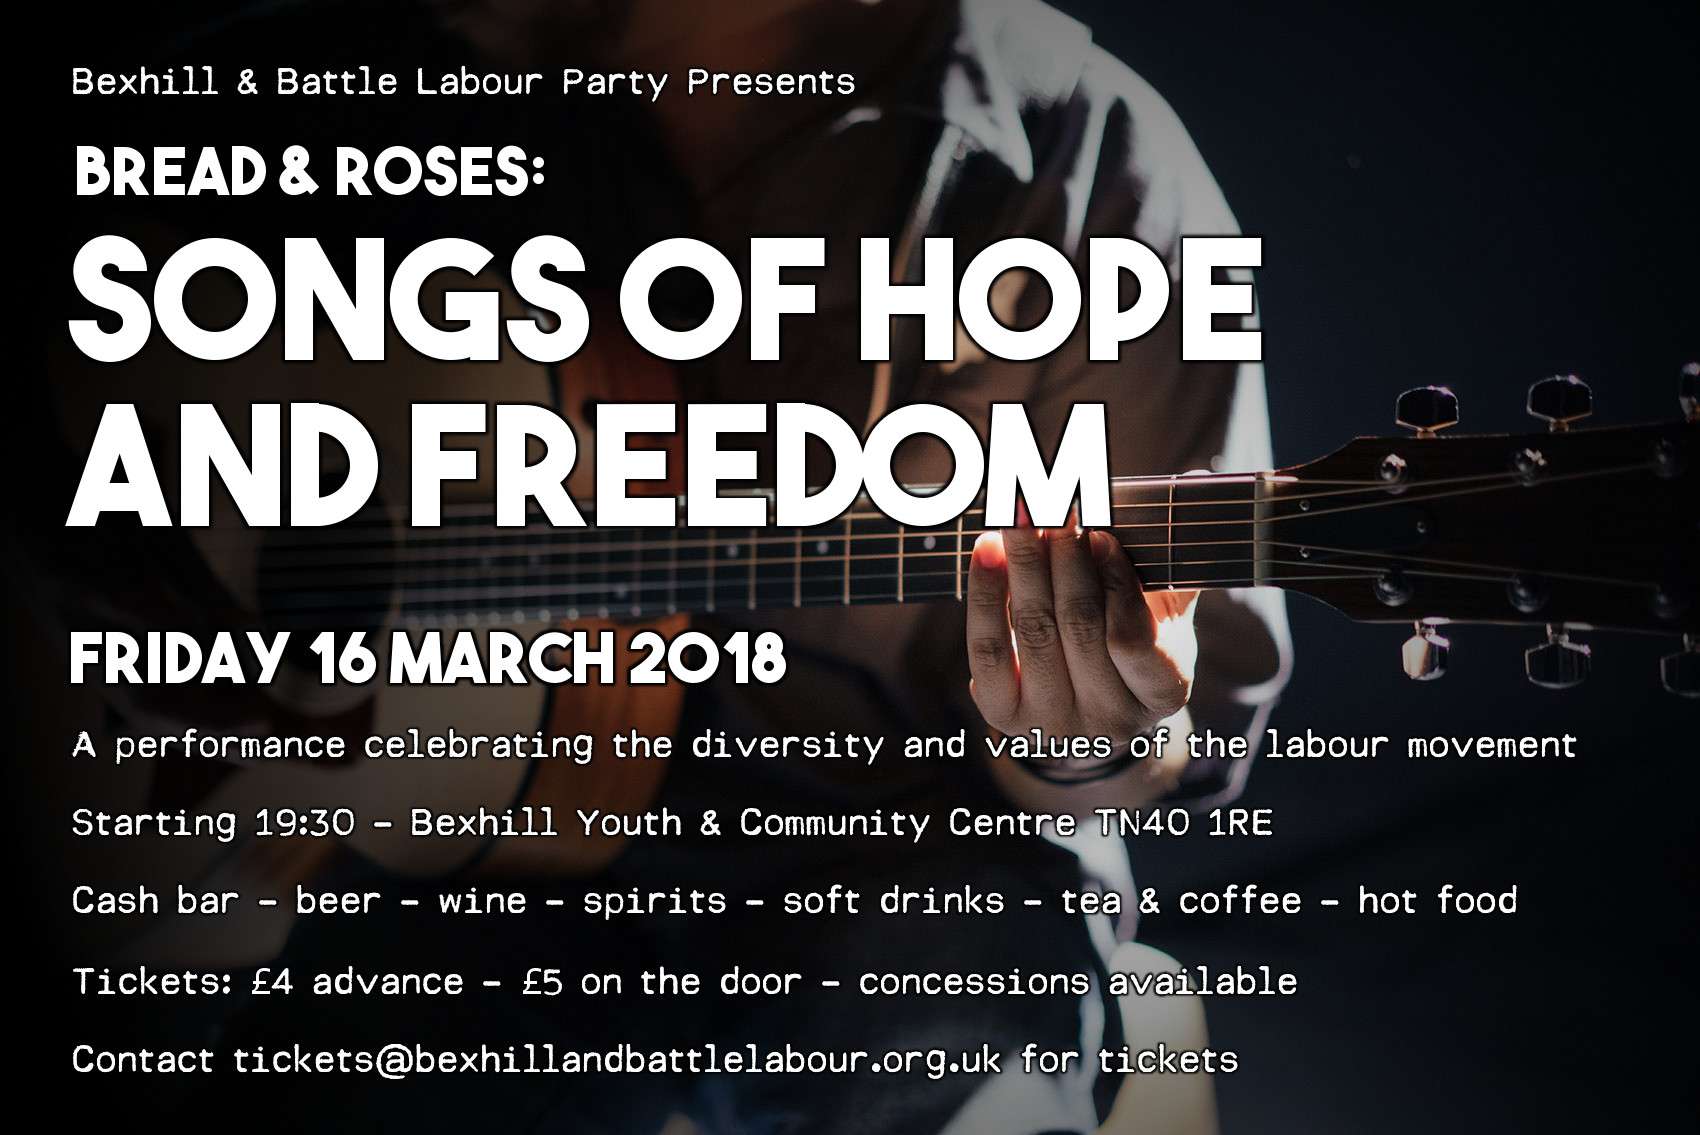 Songs of Hope and Freedom